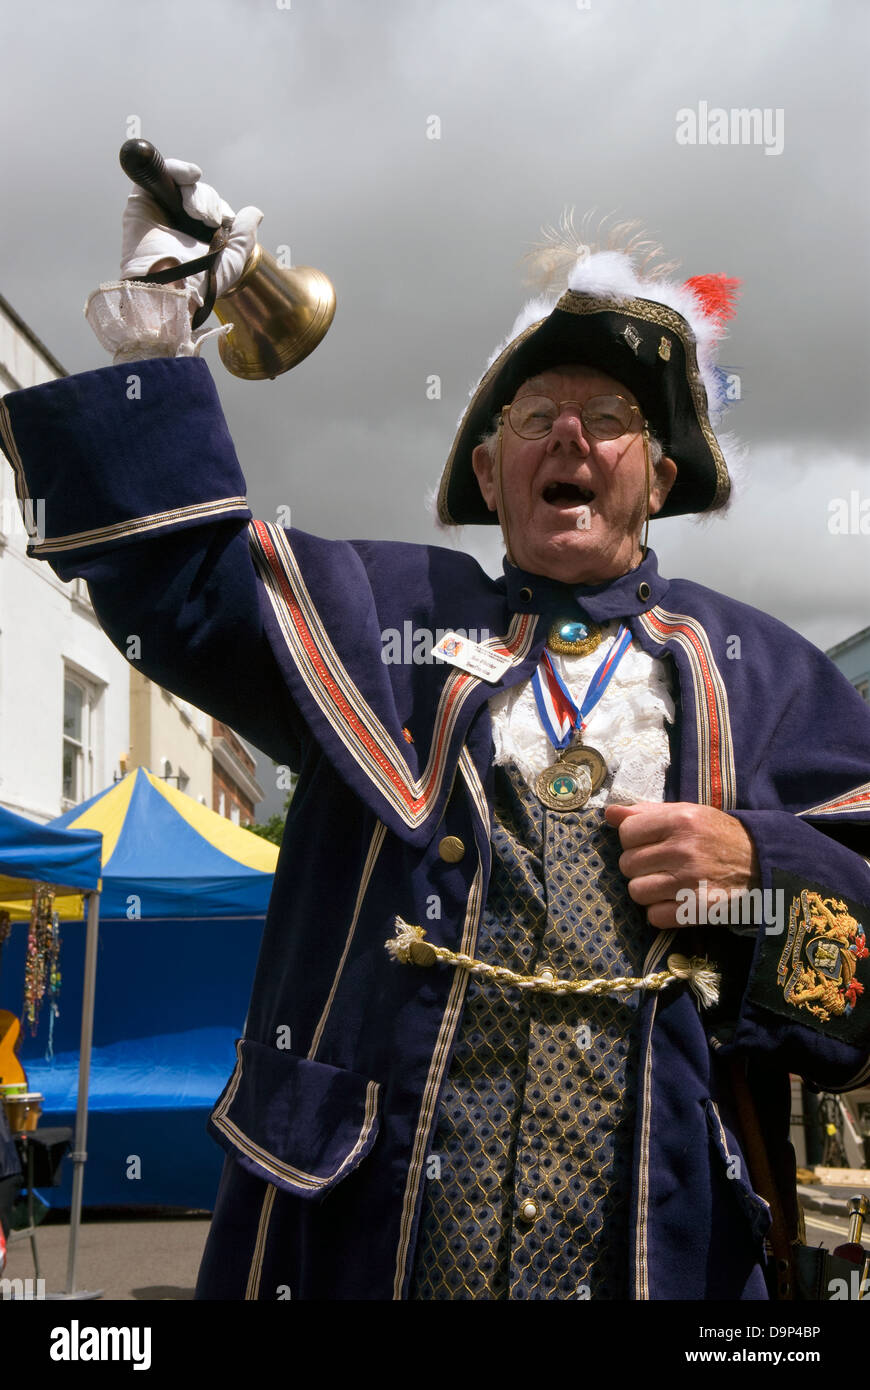 Alton Town Crier at work in High Street, Alton during the town's Regency Day and bicentenary celebrations - Stock Image